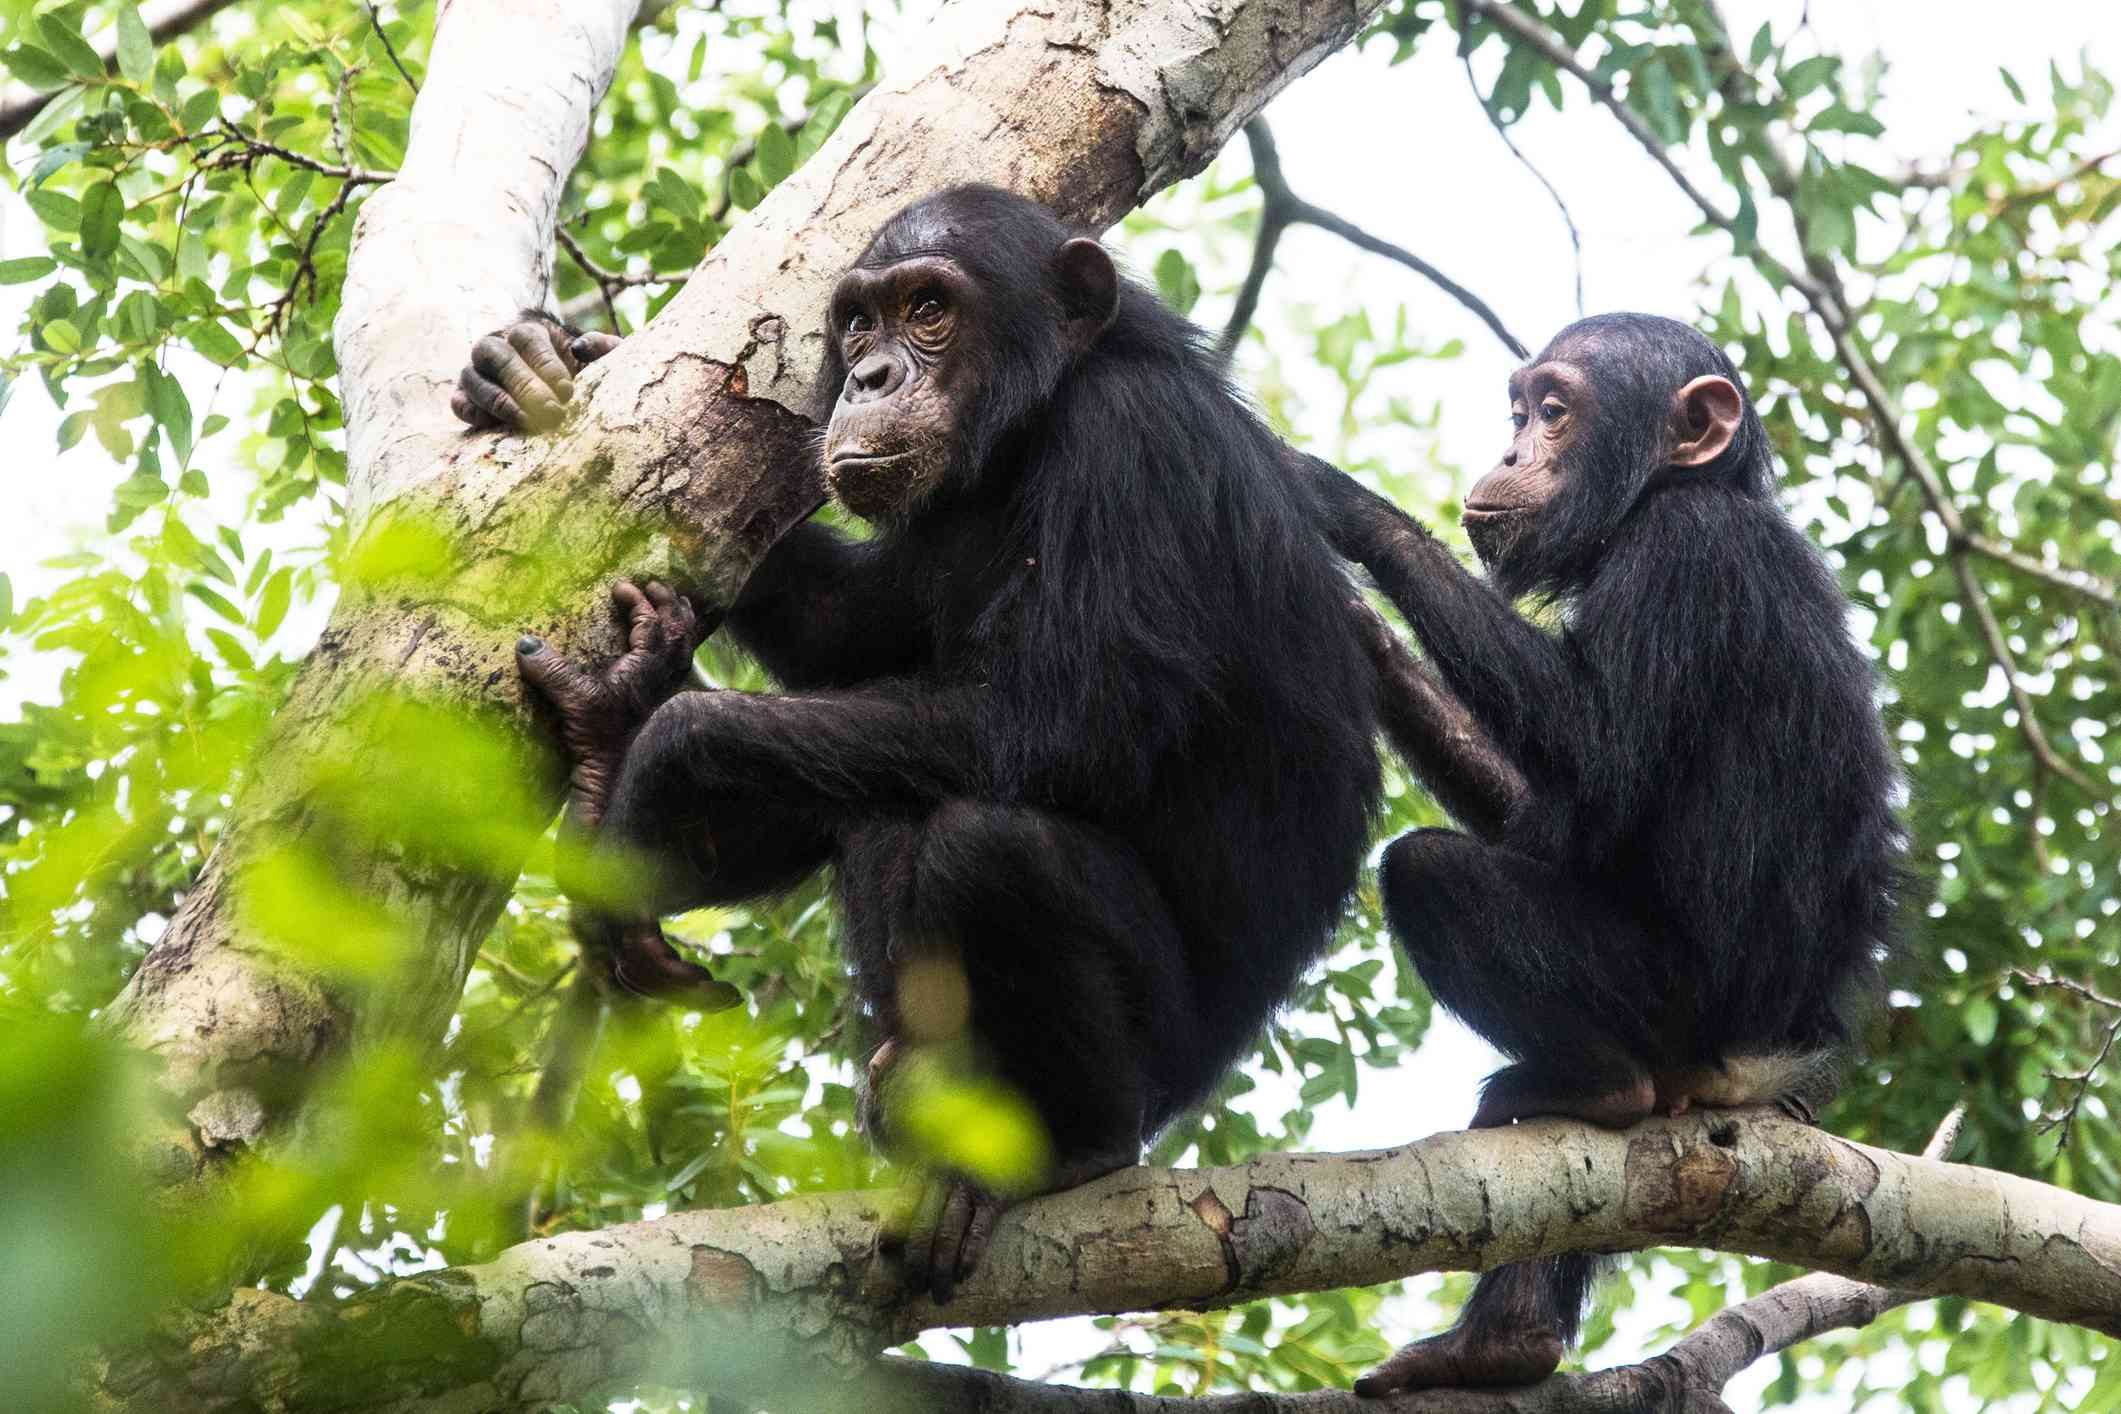 A young chimpanzee grooming an older chimpanzee sitting on a branch